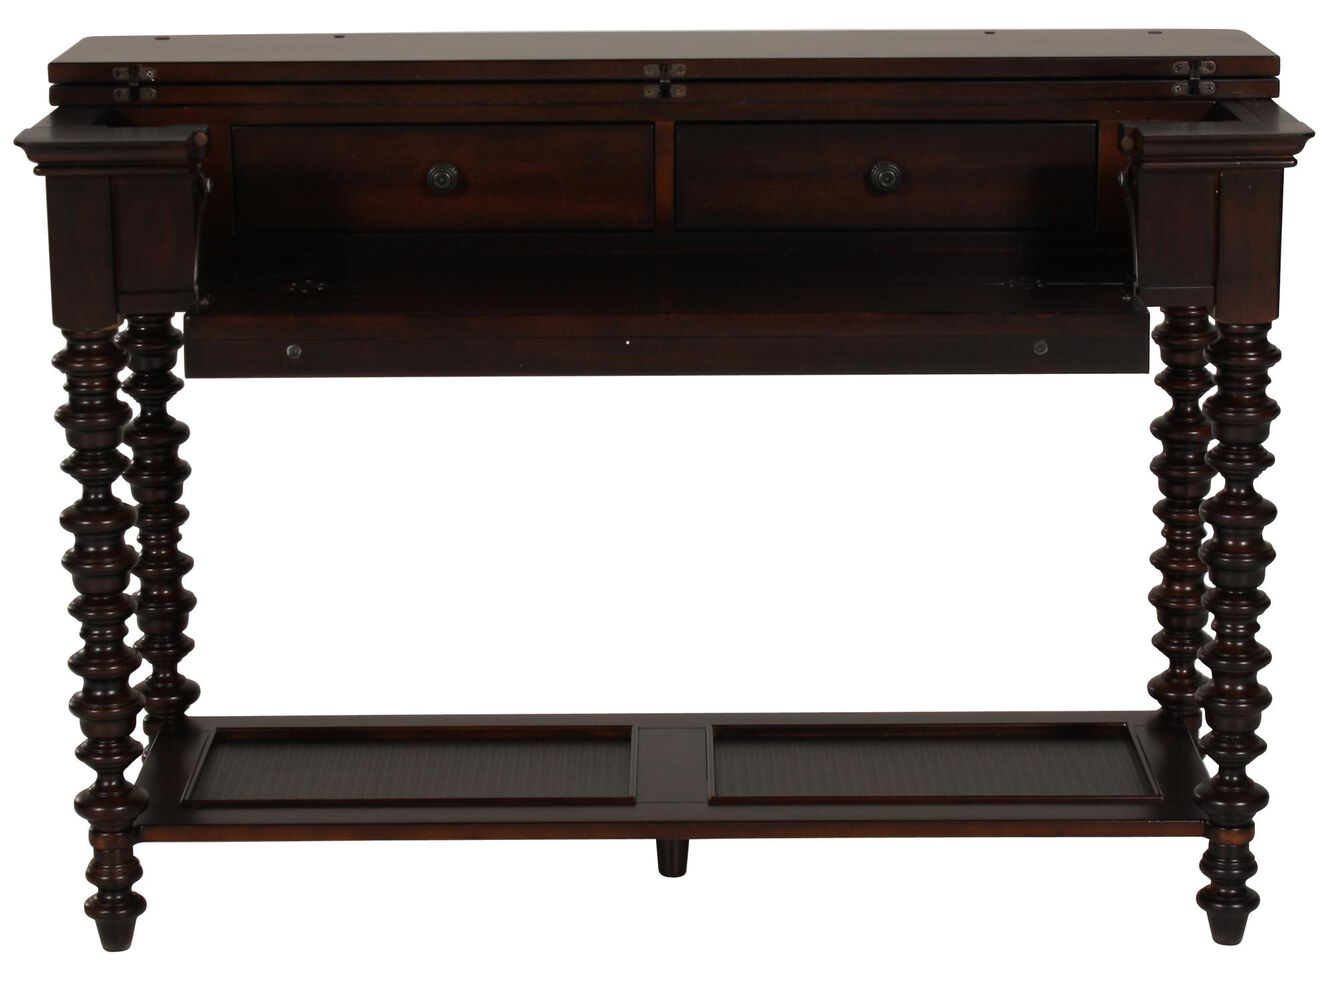 Spindle leg traditional console table in dark brown